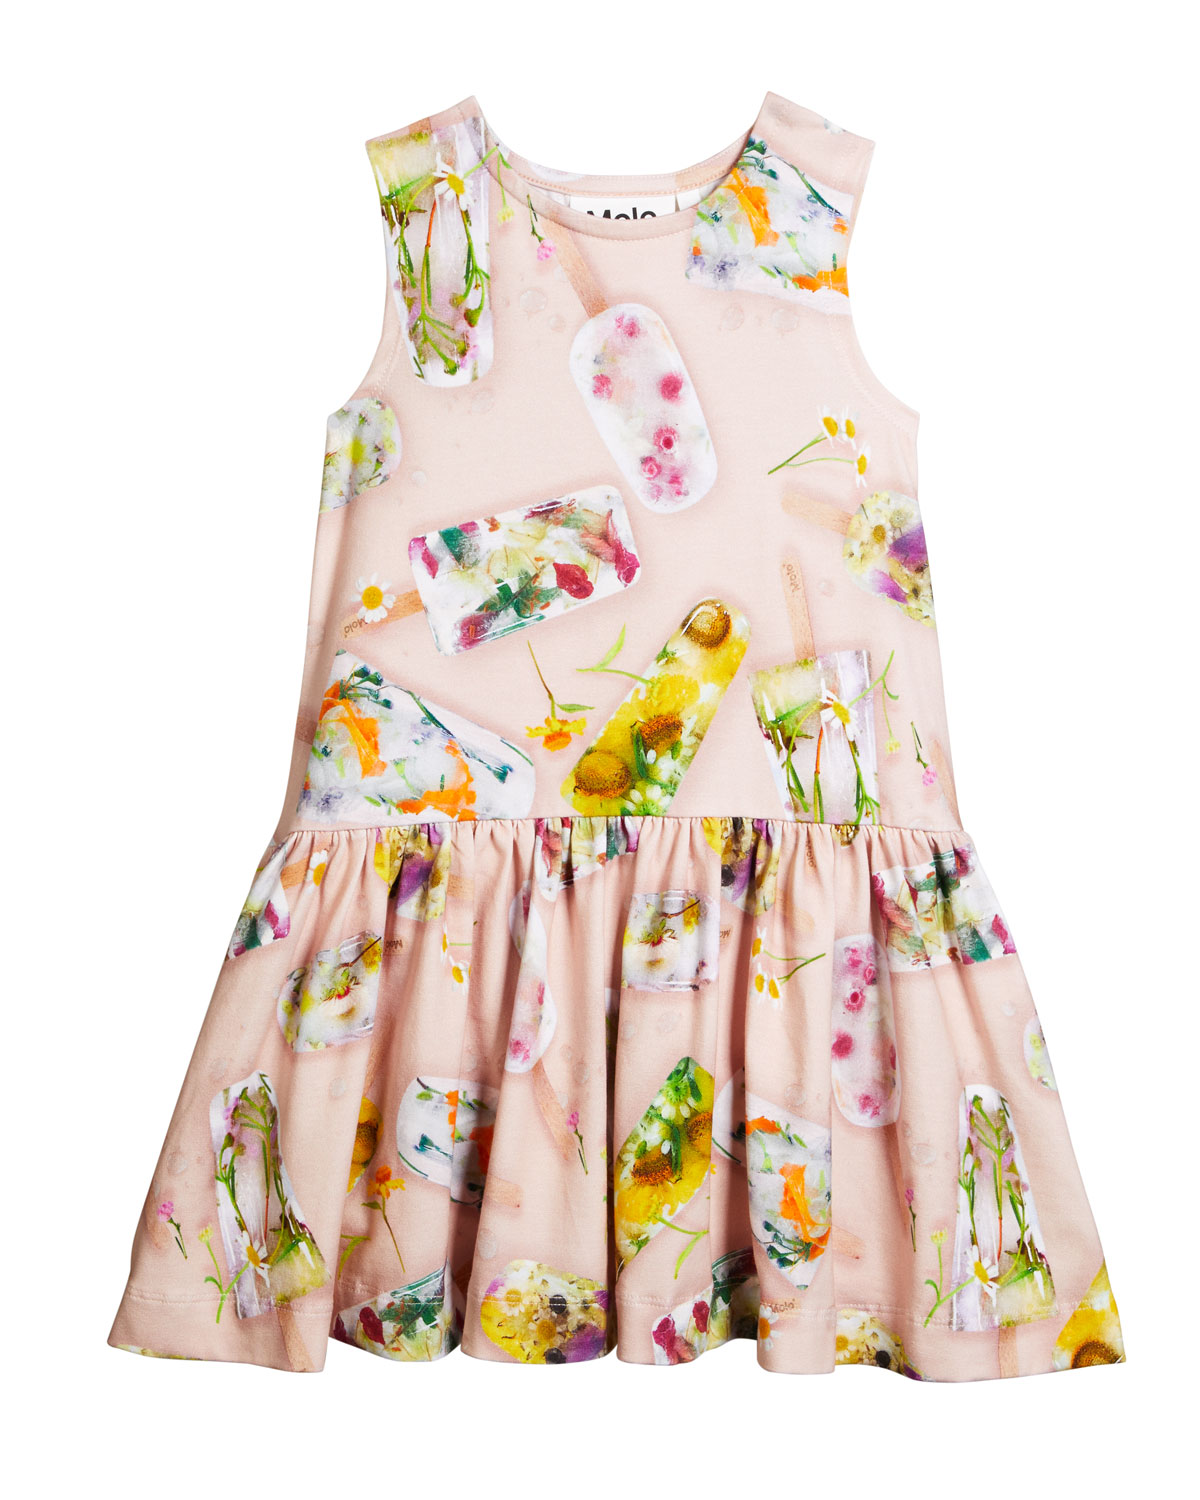 Molo Cottons GIRL'S CANDECE FLORAL POPSICLE SLEEVELESS DRESS